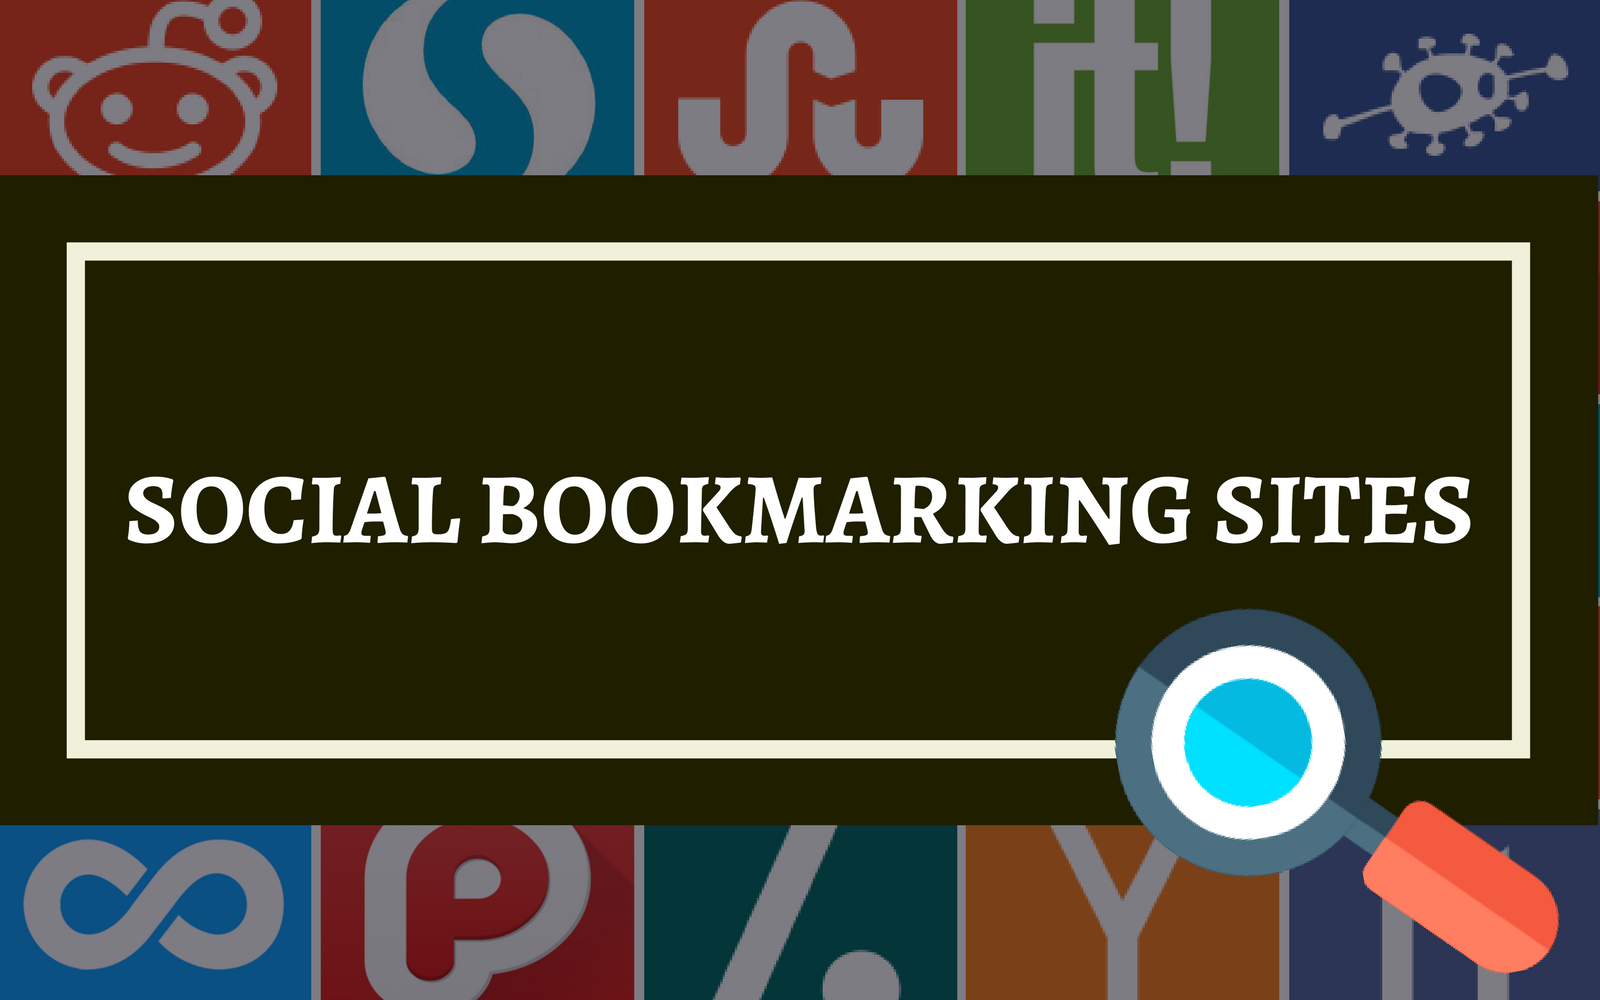 social bookmarking sites list image